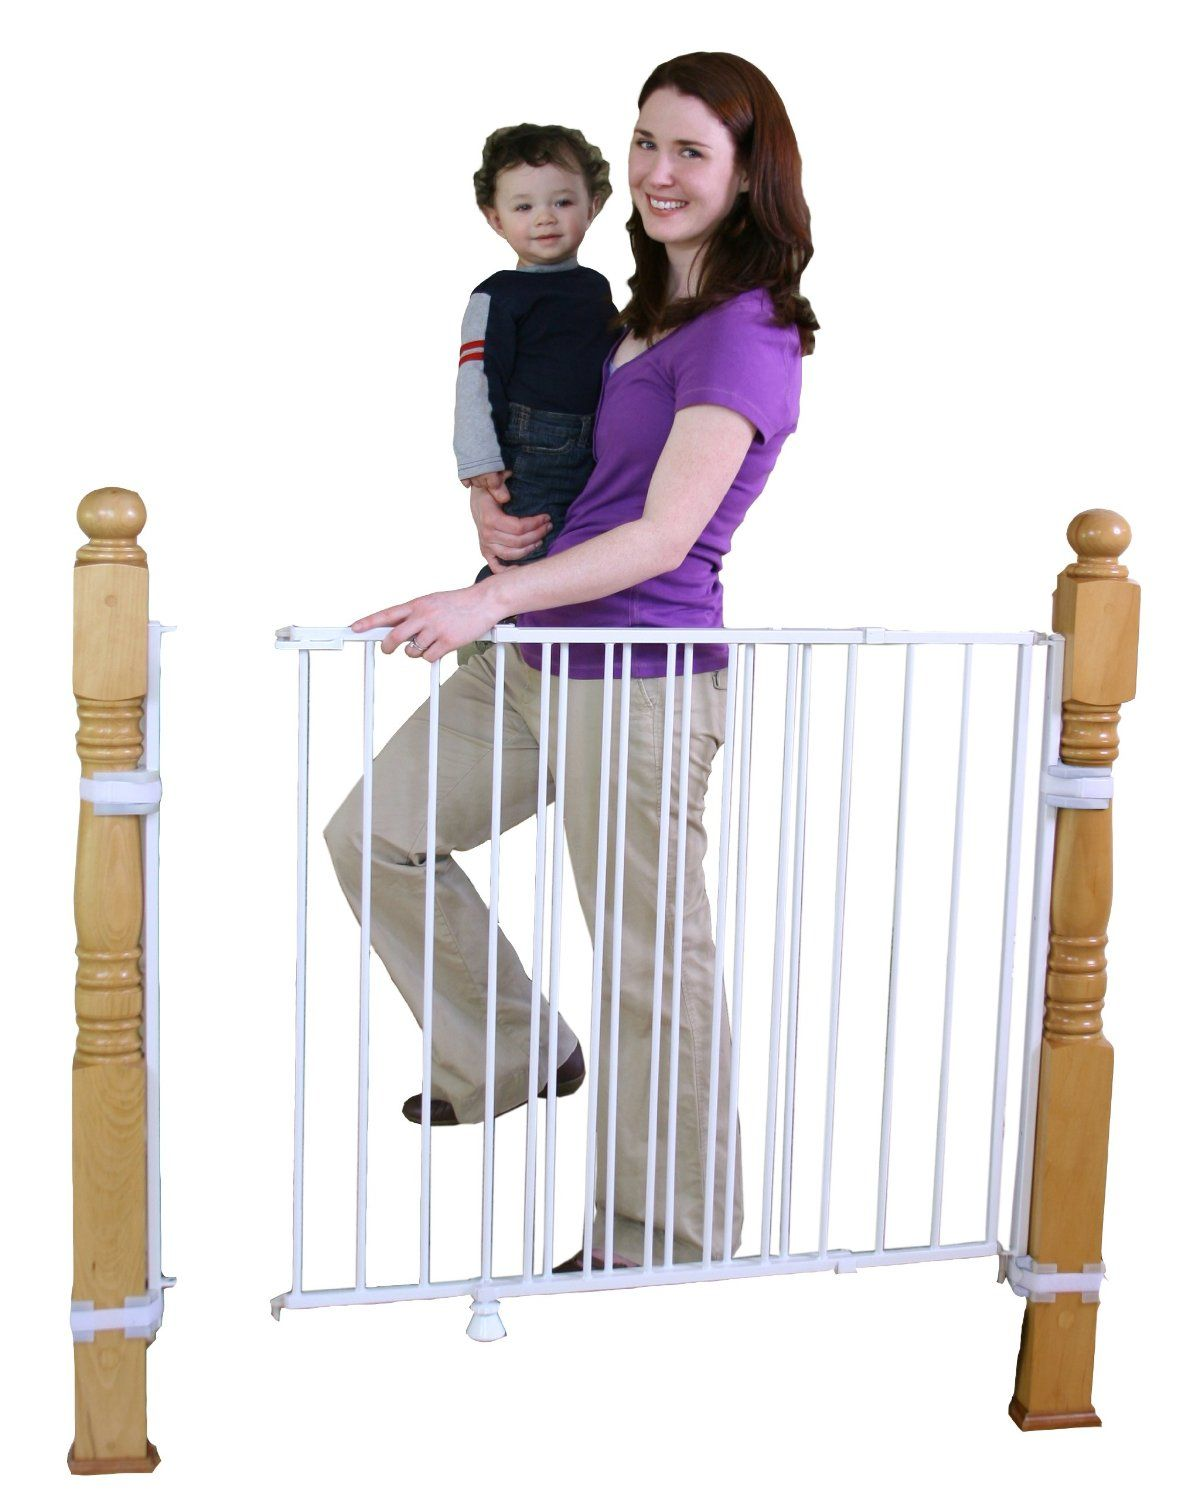 Best Baby Gates Top Of Stairs Guide and Reviews Top of